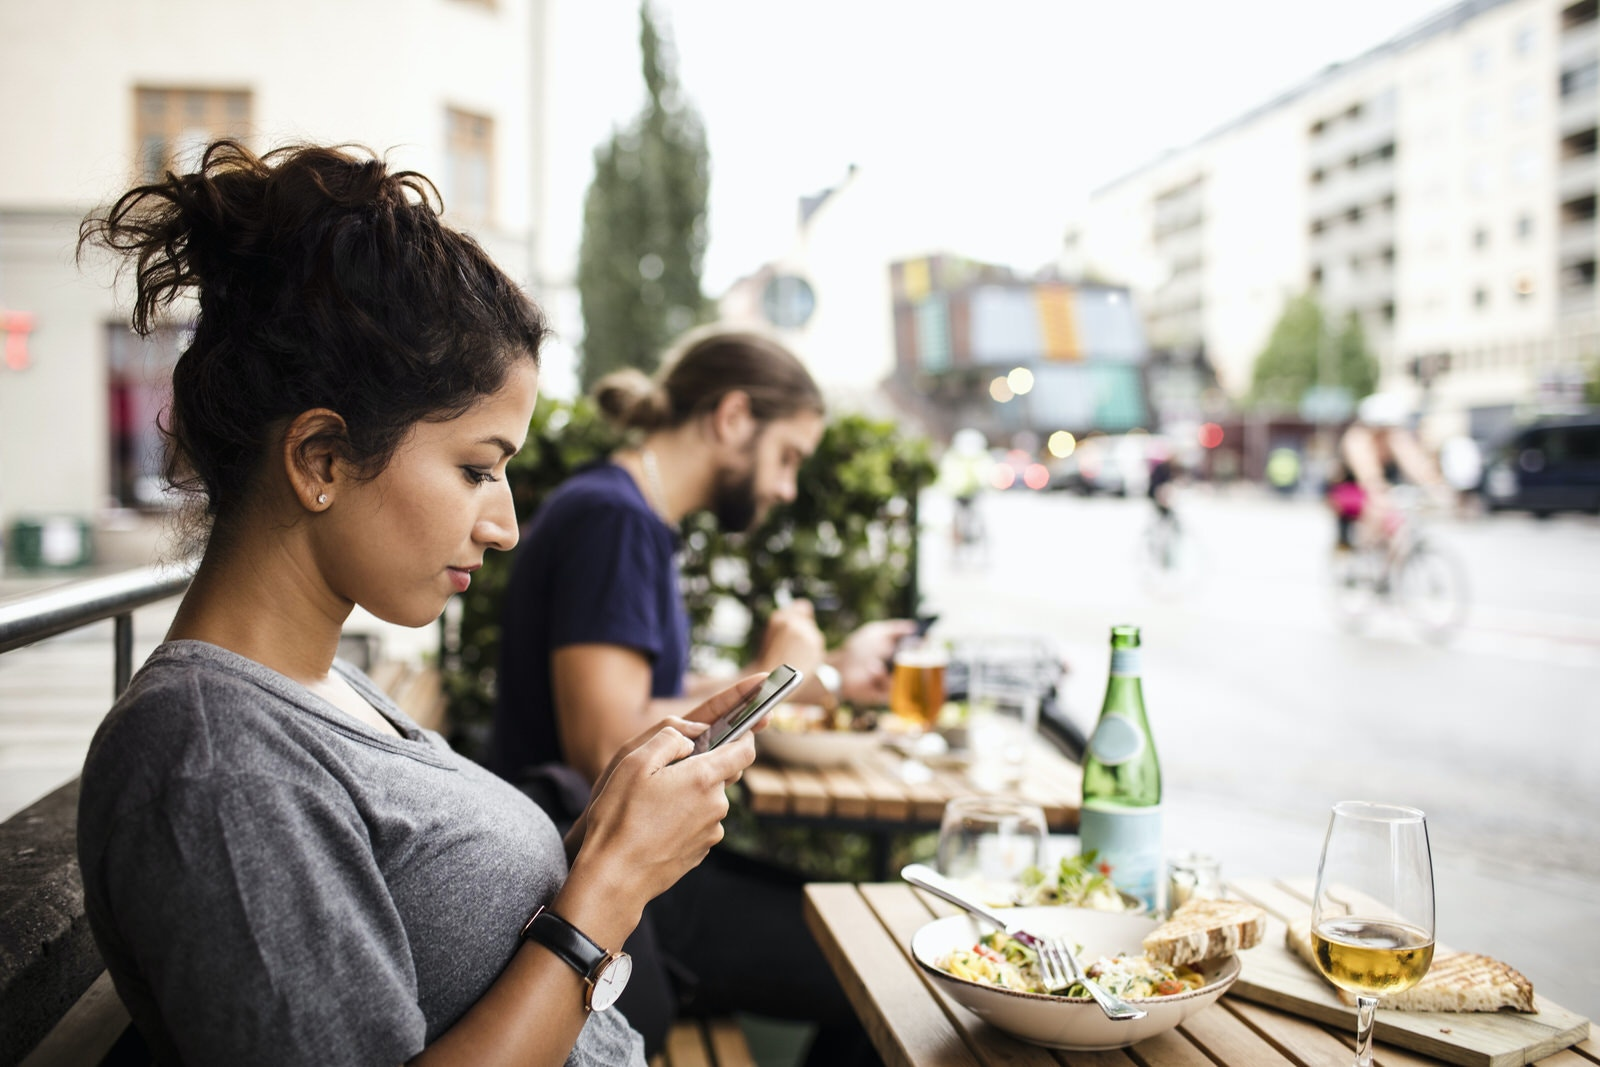 Side view of woman text messaging while having food at sidewalk cafe in city, Sodermalm, Stcokholm.